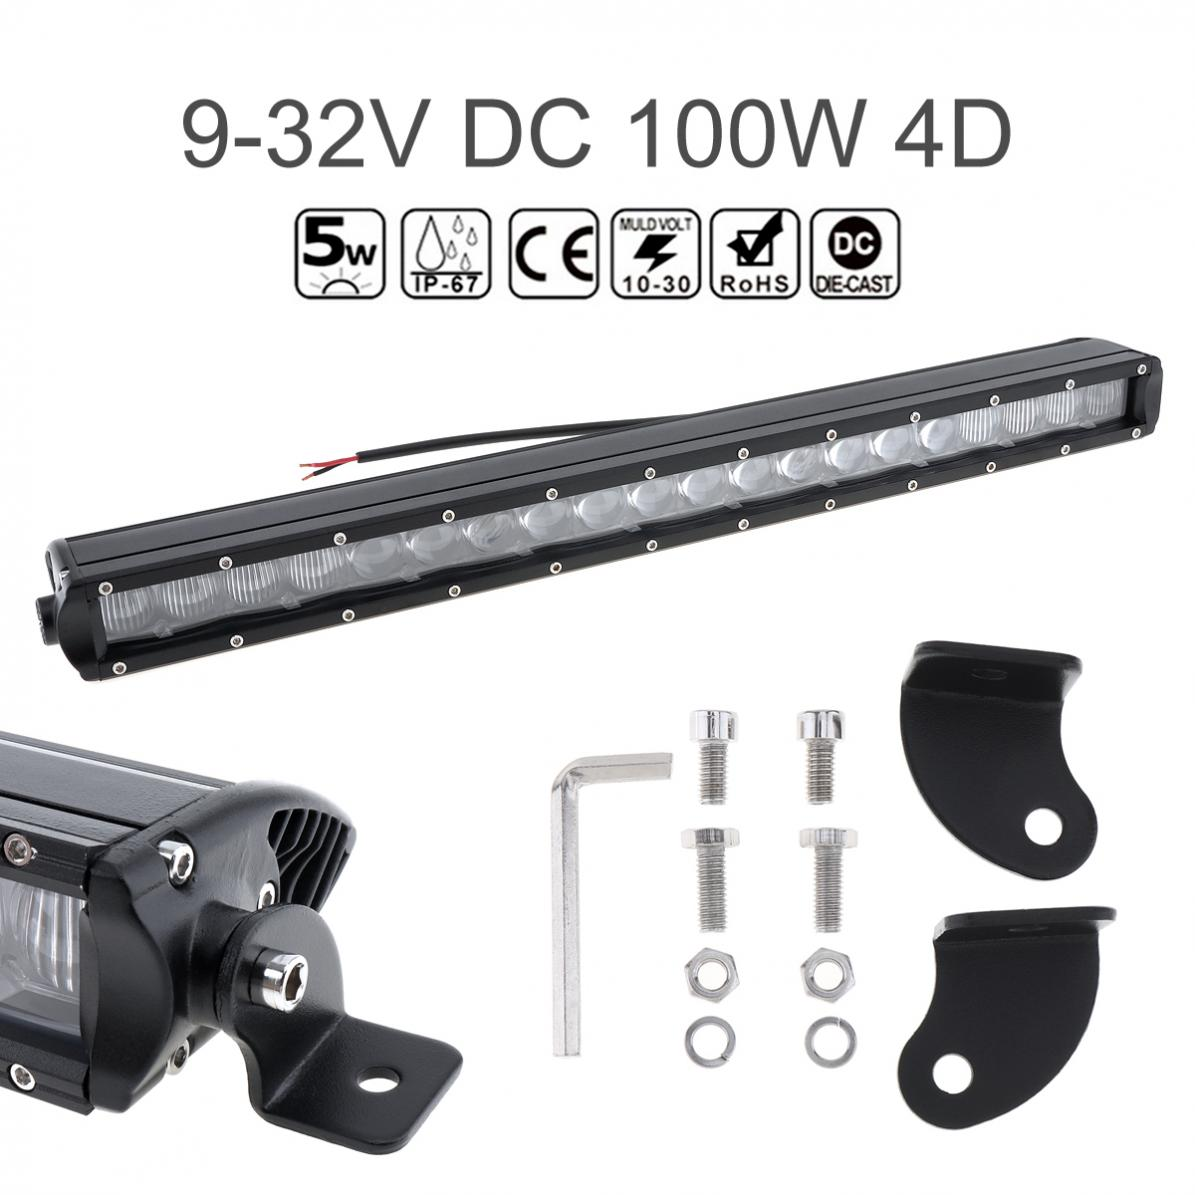 20 Inch 10000 LM 100W Waterproof Car Straight LED Worklight Bar 20x4D Combo Offroad Light Driving Lamp for Truck SUV 4X4 4WD ATV